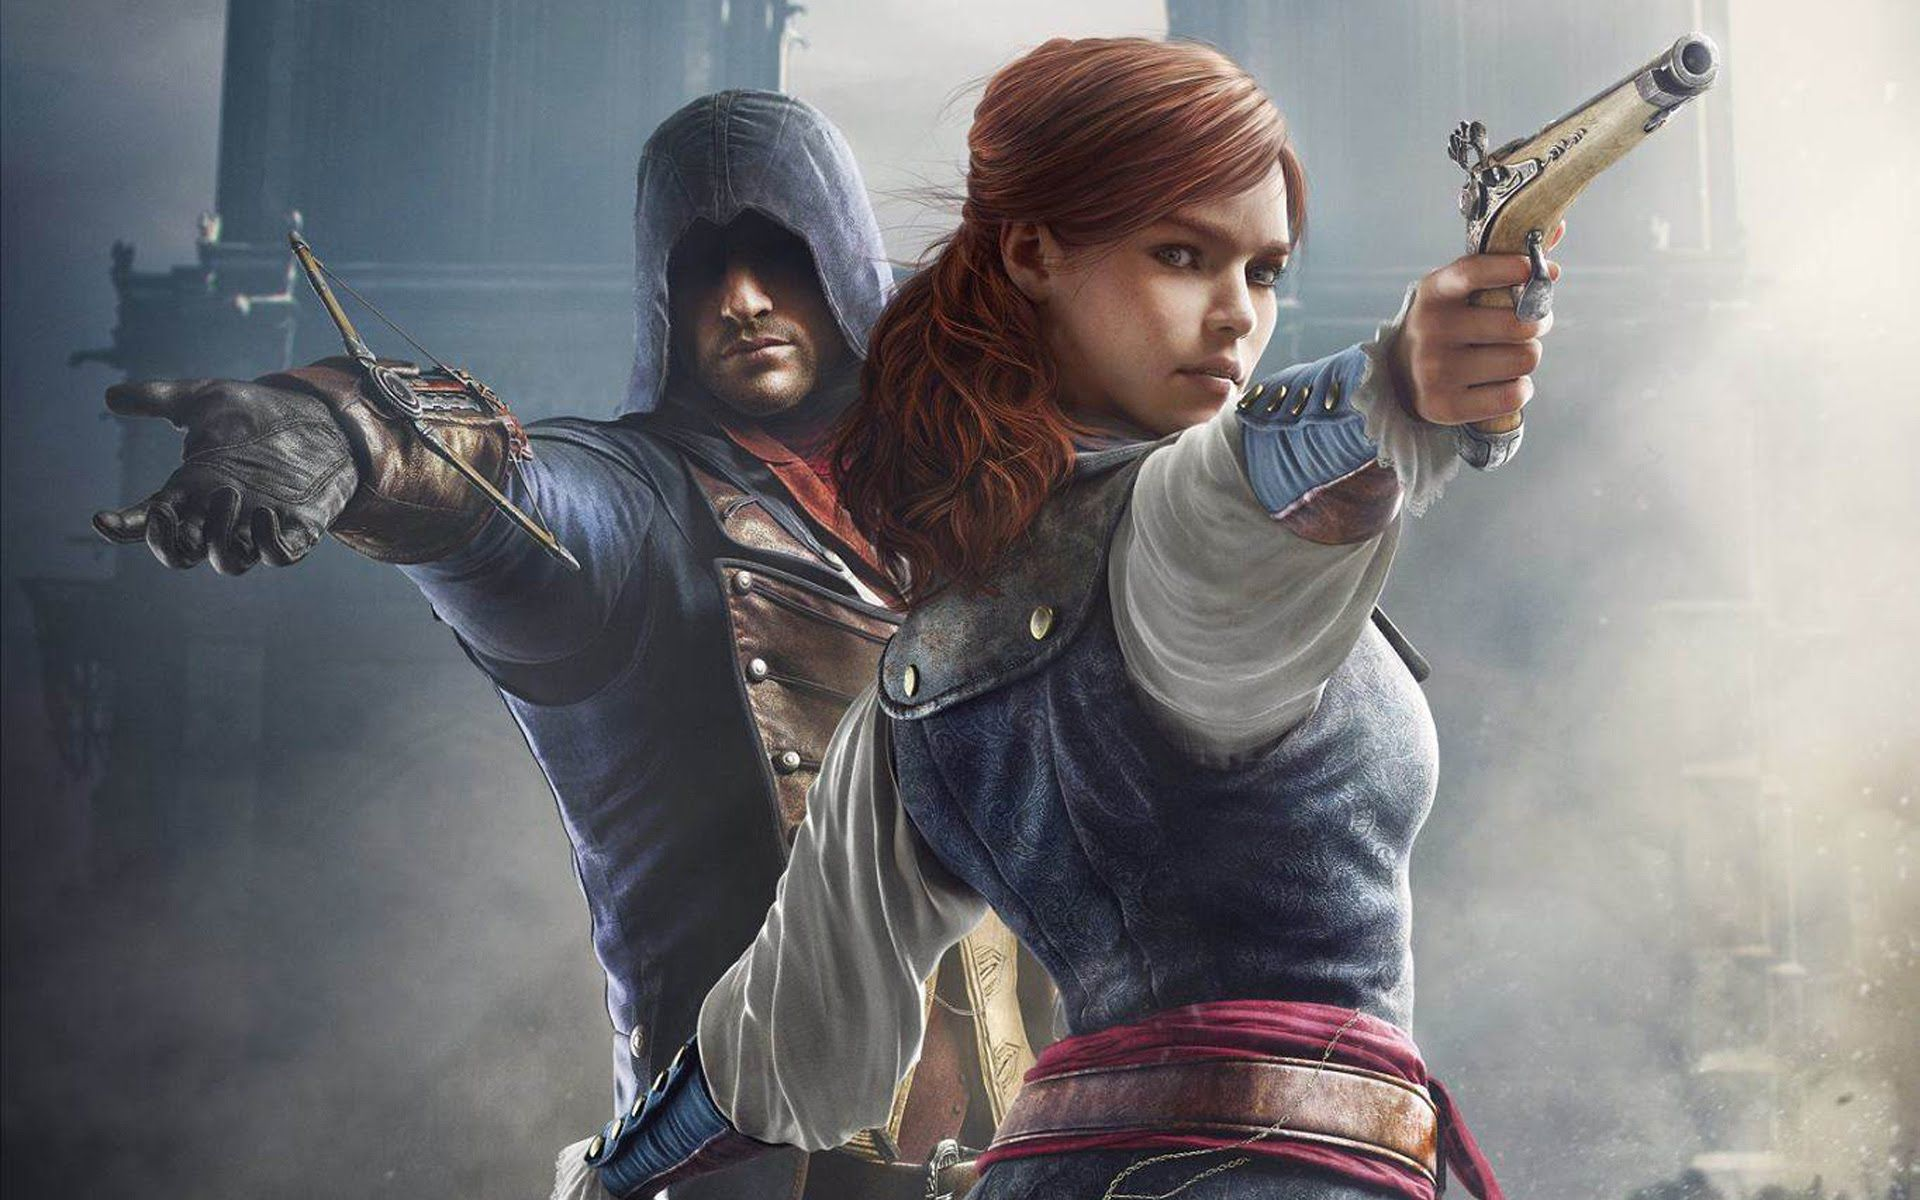 Assassin S Creed Unity 2014 Film Complet En Francais Assassins Creed Unity Assassins Creed Unity Elise Assassins Creed Unity Arno